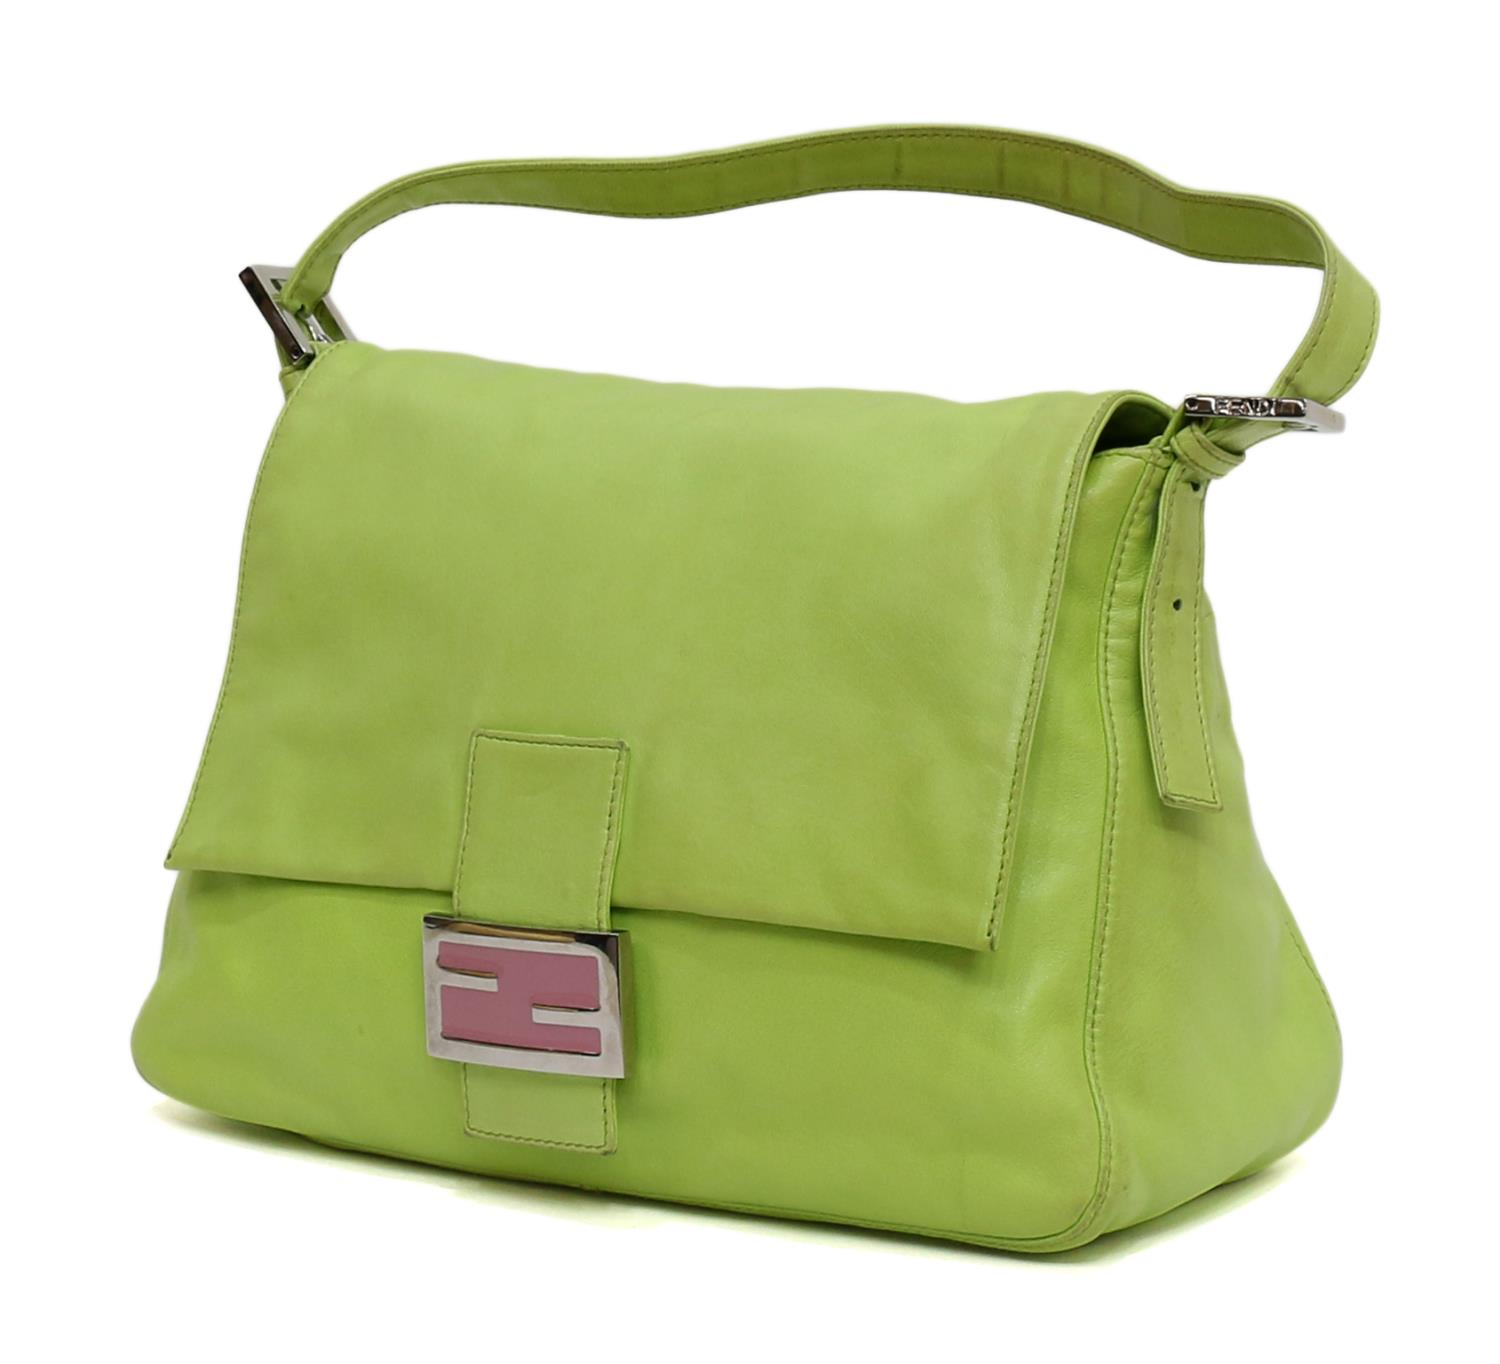 Prada Beige Lime Green Canvas Leather Zipper Closure Satchel Handbag. $ New Genuine. New Genuine Mk Michael Kors 8 Black And Lime Zipper Clutch Purse 32f4gjtz3t. $ Marc Jacobs. Fossil Lime Green Leather 2 Handles Medium Purse With Zipper. $ Lime Green.